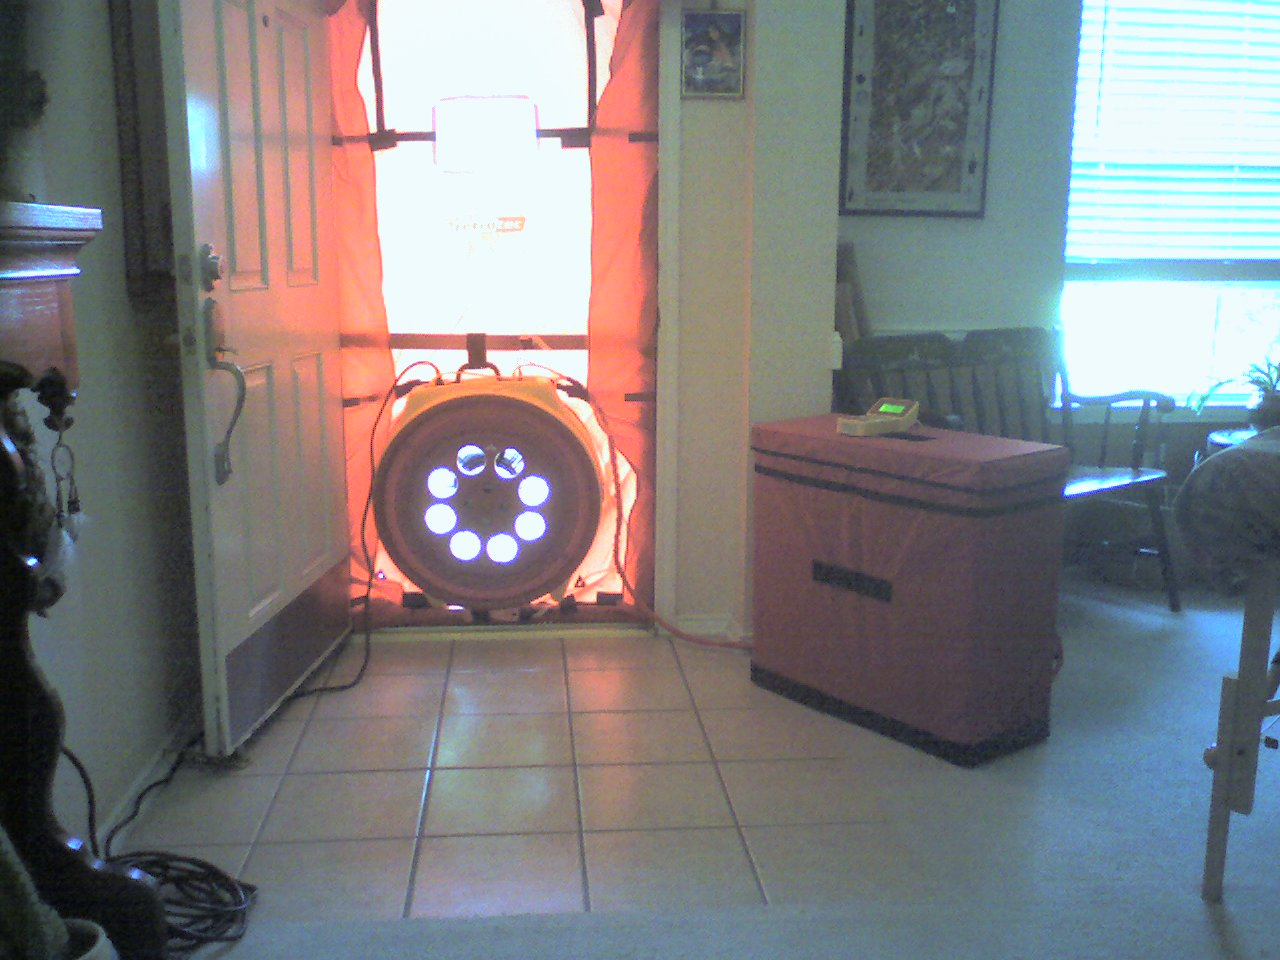 Blower door from inside residential home